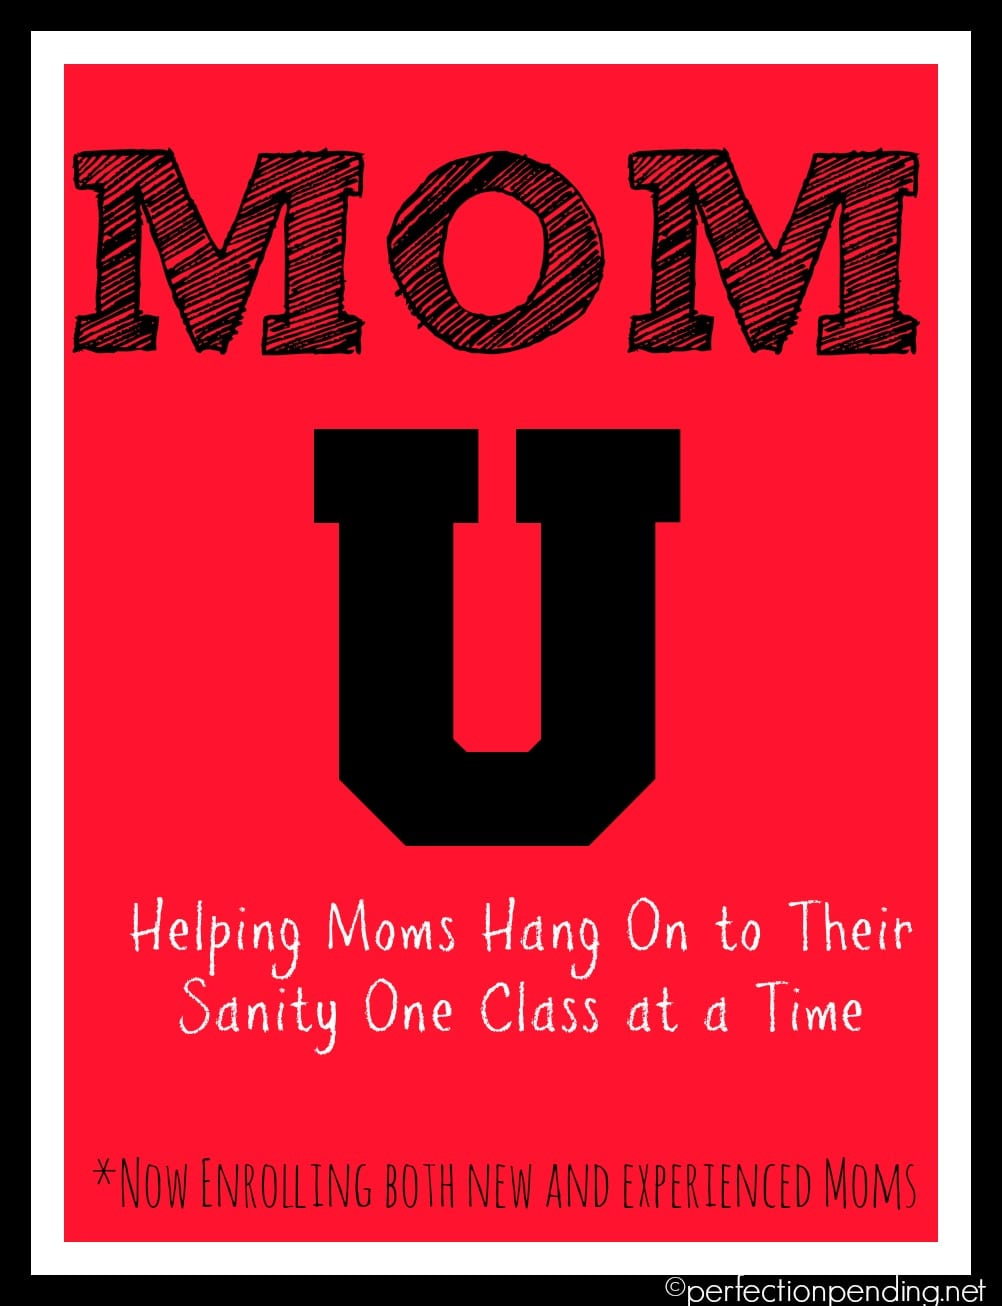 Mom U. Helping Moms Hang On To Their Sanity One Class At a Time. Courses Mostly Offered Online at PerfectionPending.net